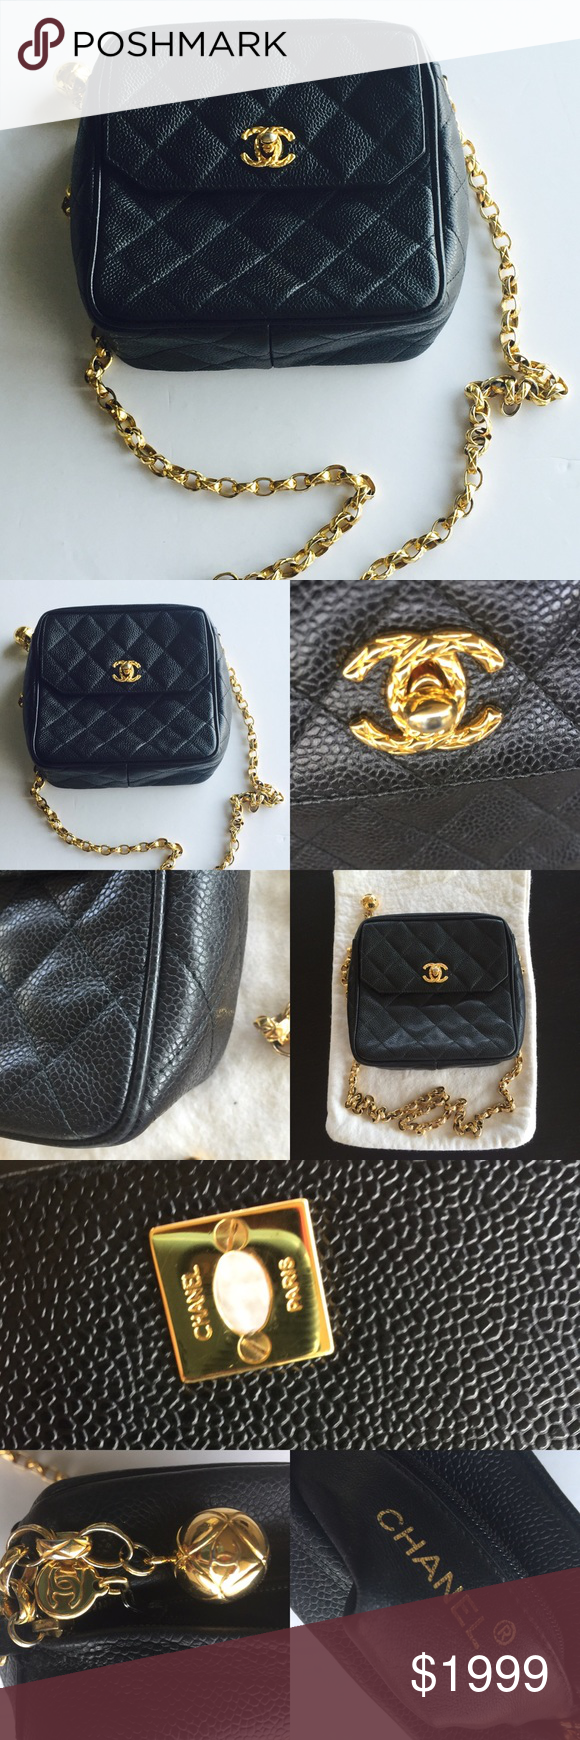 Chanel vintage camera bag made in Italy crossbody Chanel vintage caviar  camera bag made in Italy crossbody. Measurements about 6.5